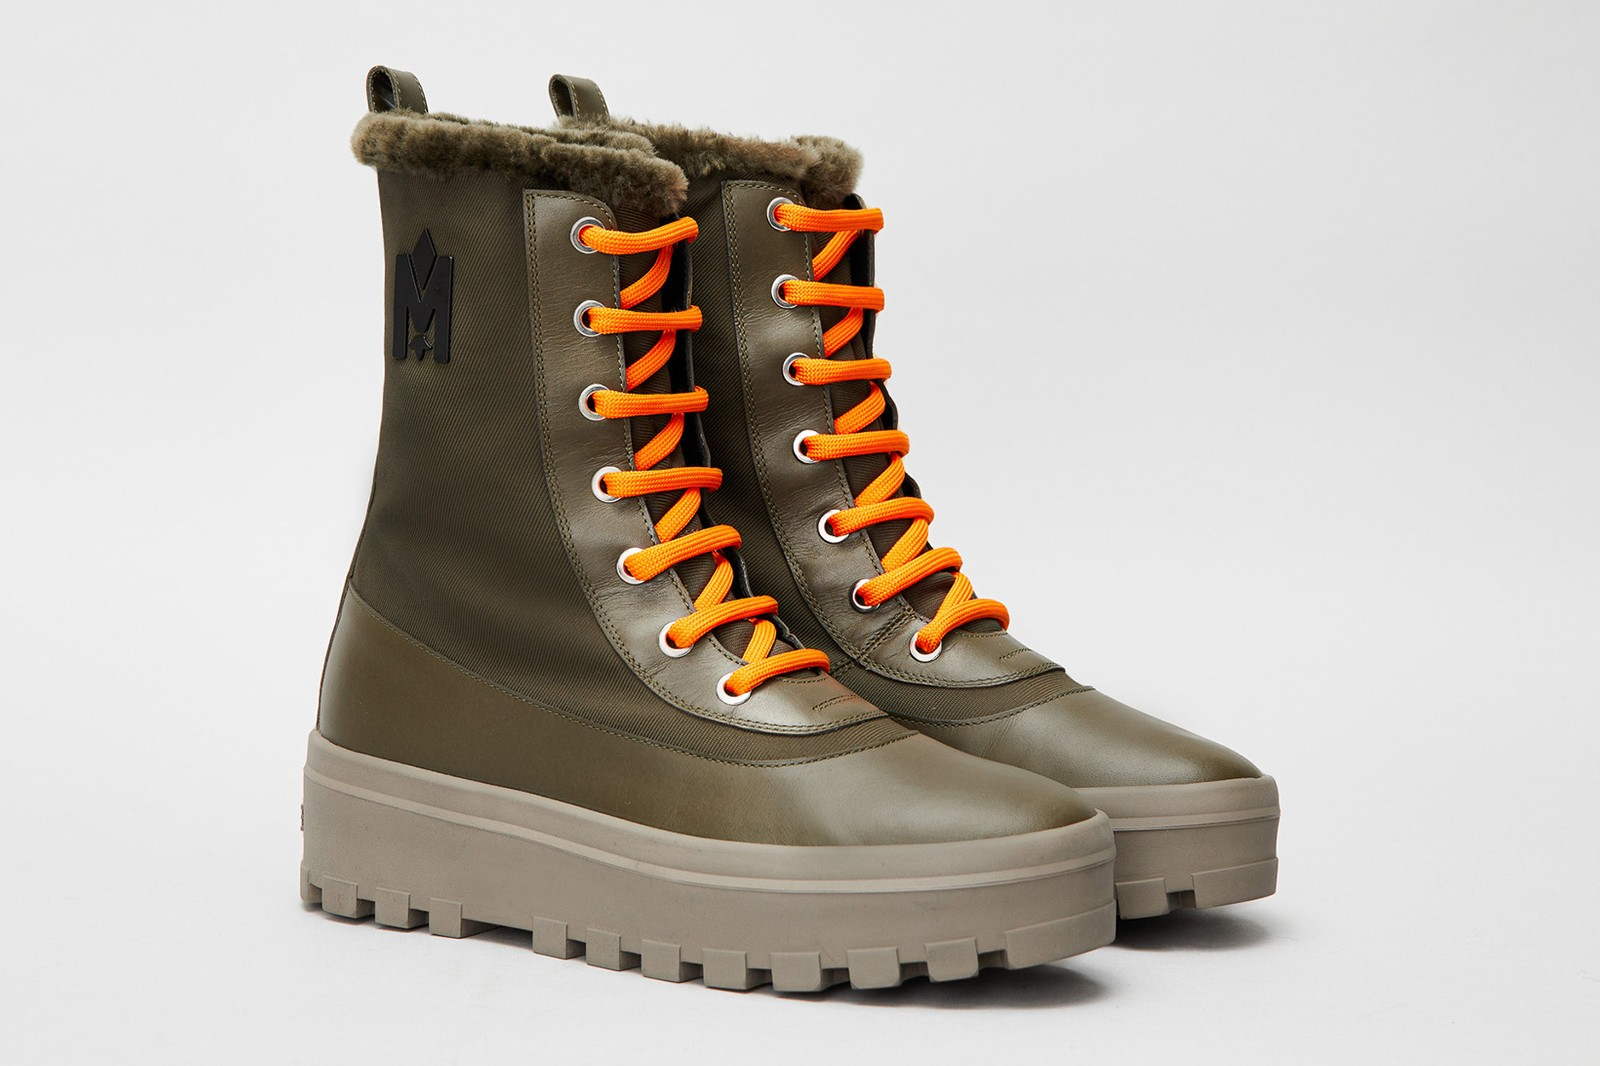 mackage boots winter cold weather warm chunky unisex hero noble rebelle warrior footwear release